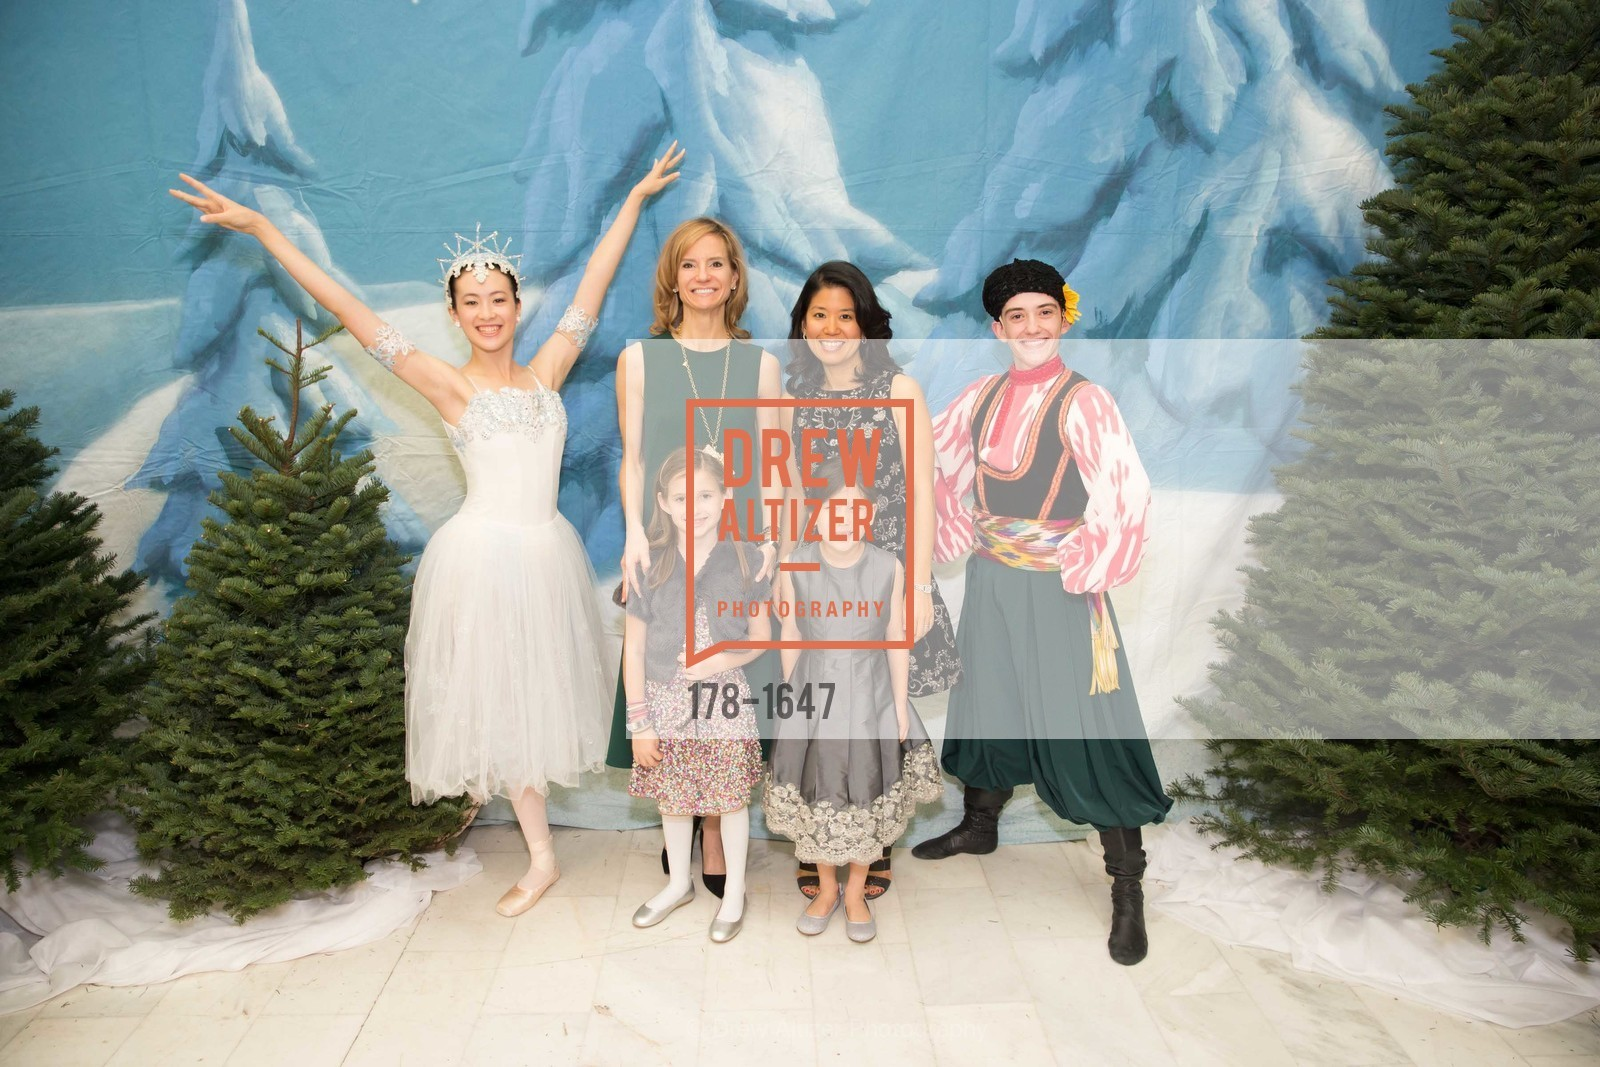 Anne-Marie Peterson, Caroline Peterson, Tomoko Fortune, Aiko Fortune, SF Ballet's Nutcracker Luncheon, City Hall & War Memorial Opera House. 301 Van Ness Ave, San Francisco, CA 94109, December 11th, 2016